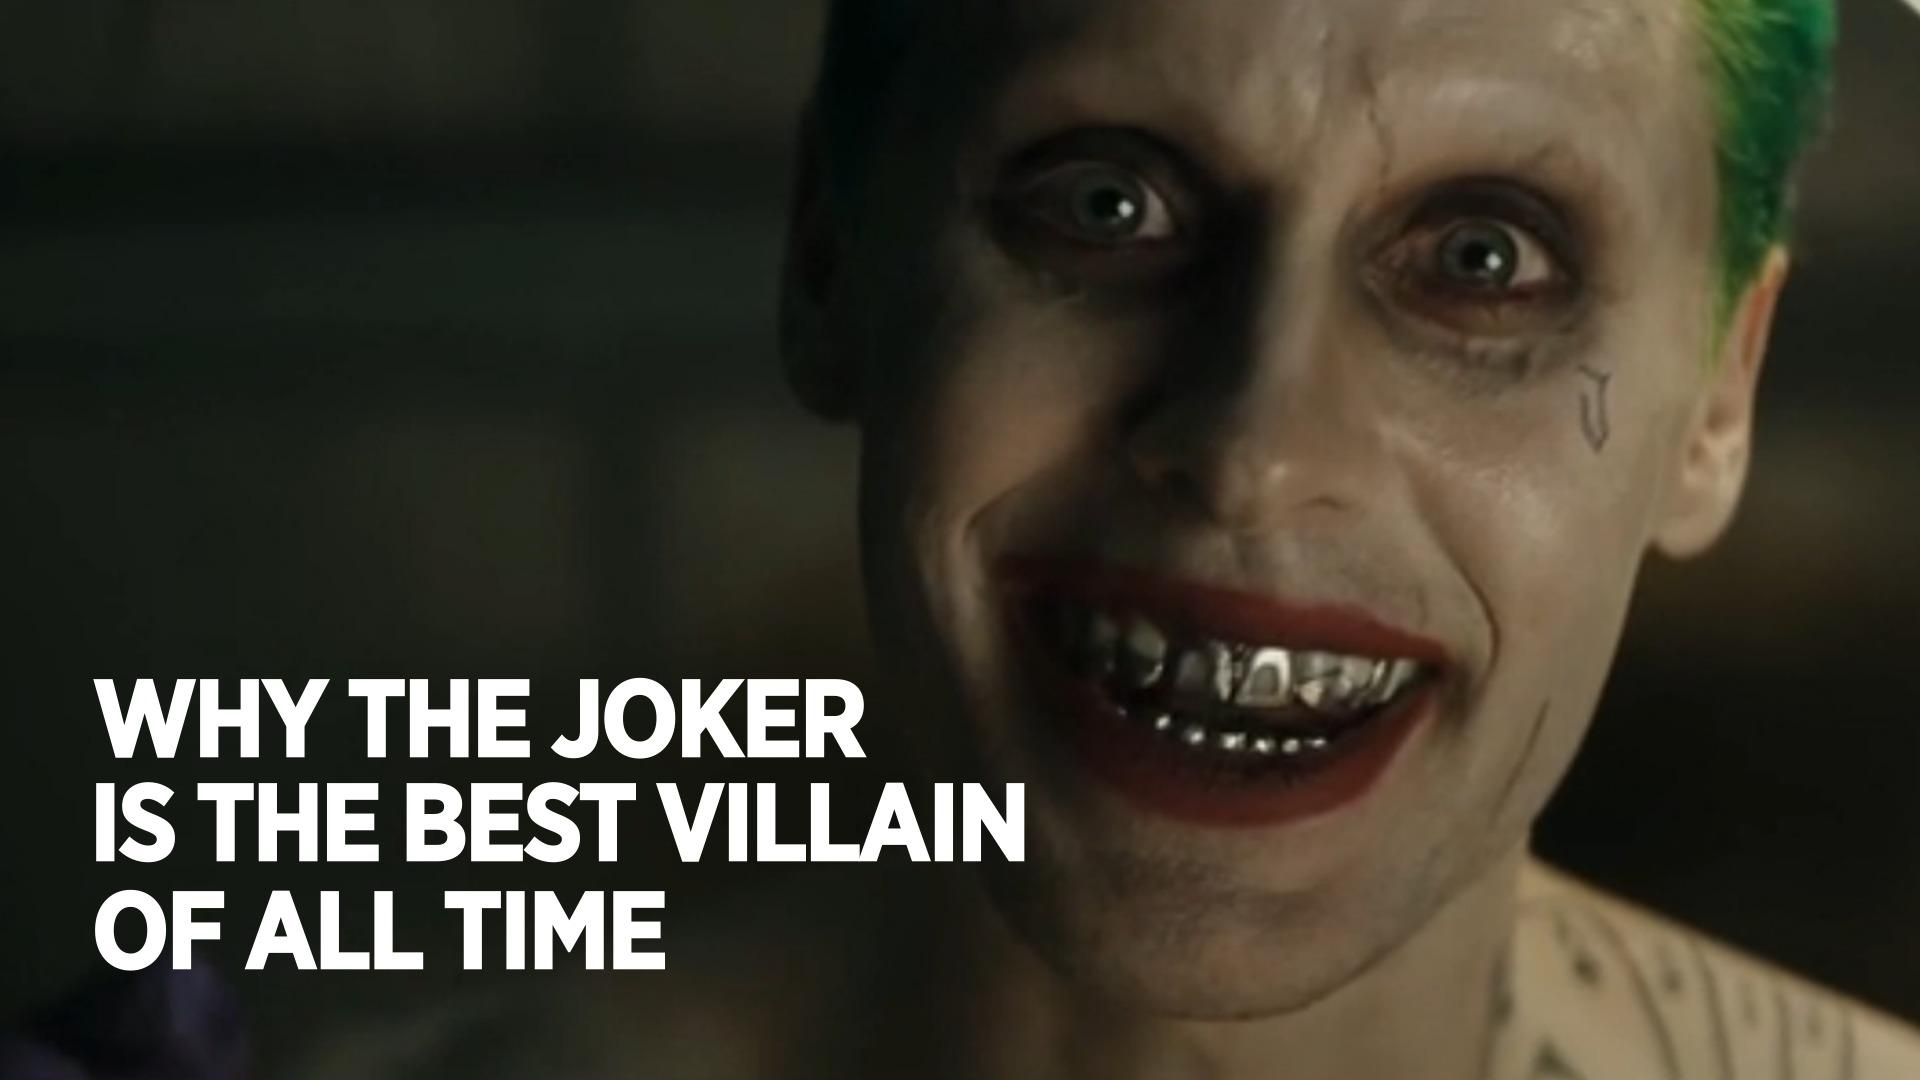 Why The Joker Is The Best Villain Of All Time